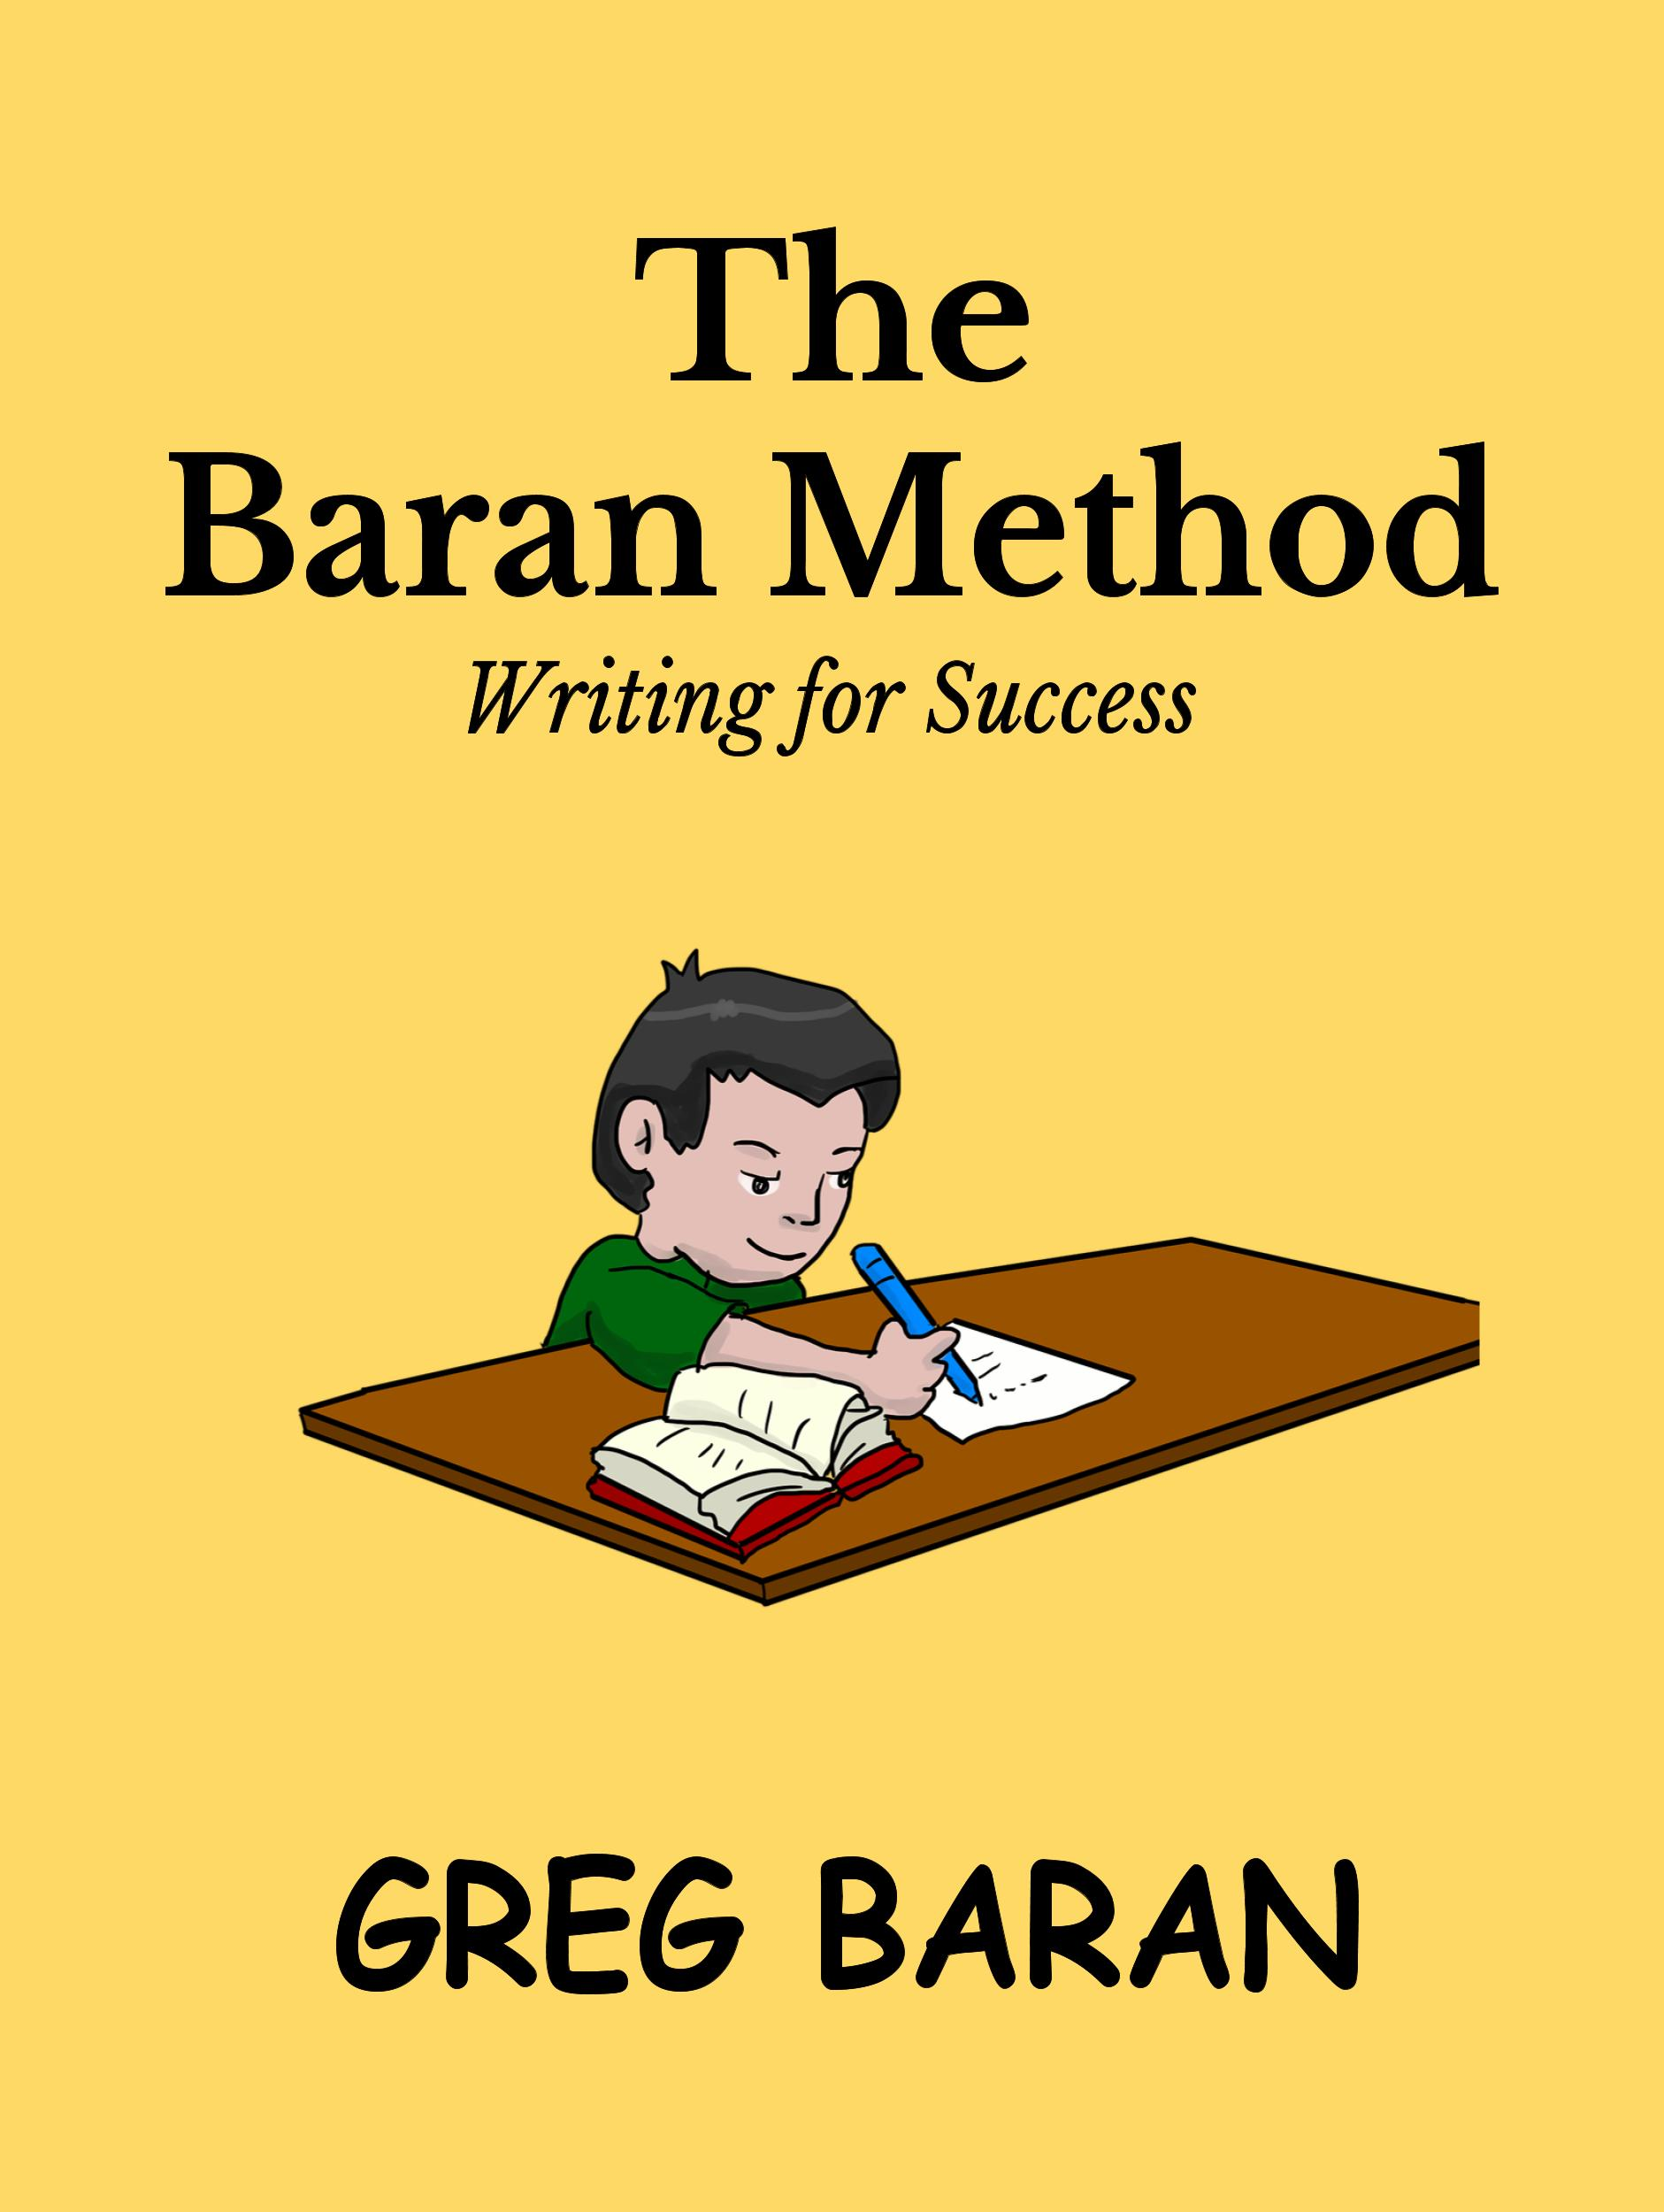 - Click here now to get your copy of The Baran Method. It's available for purchase on Amazon.